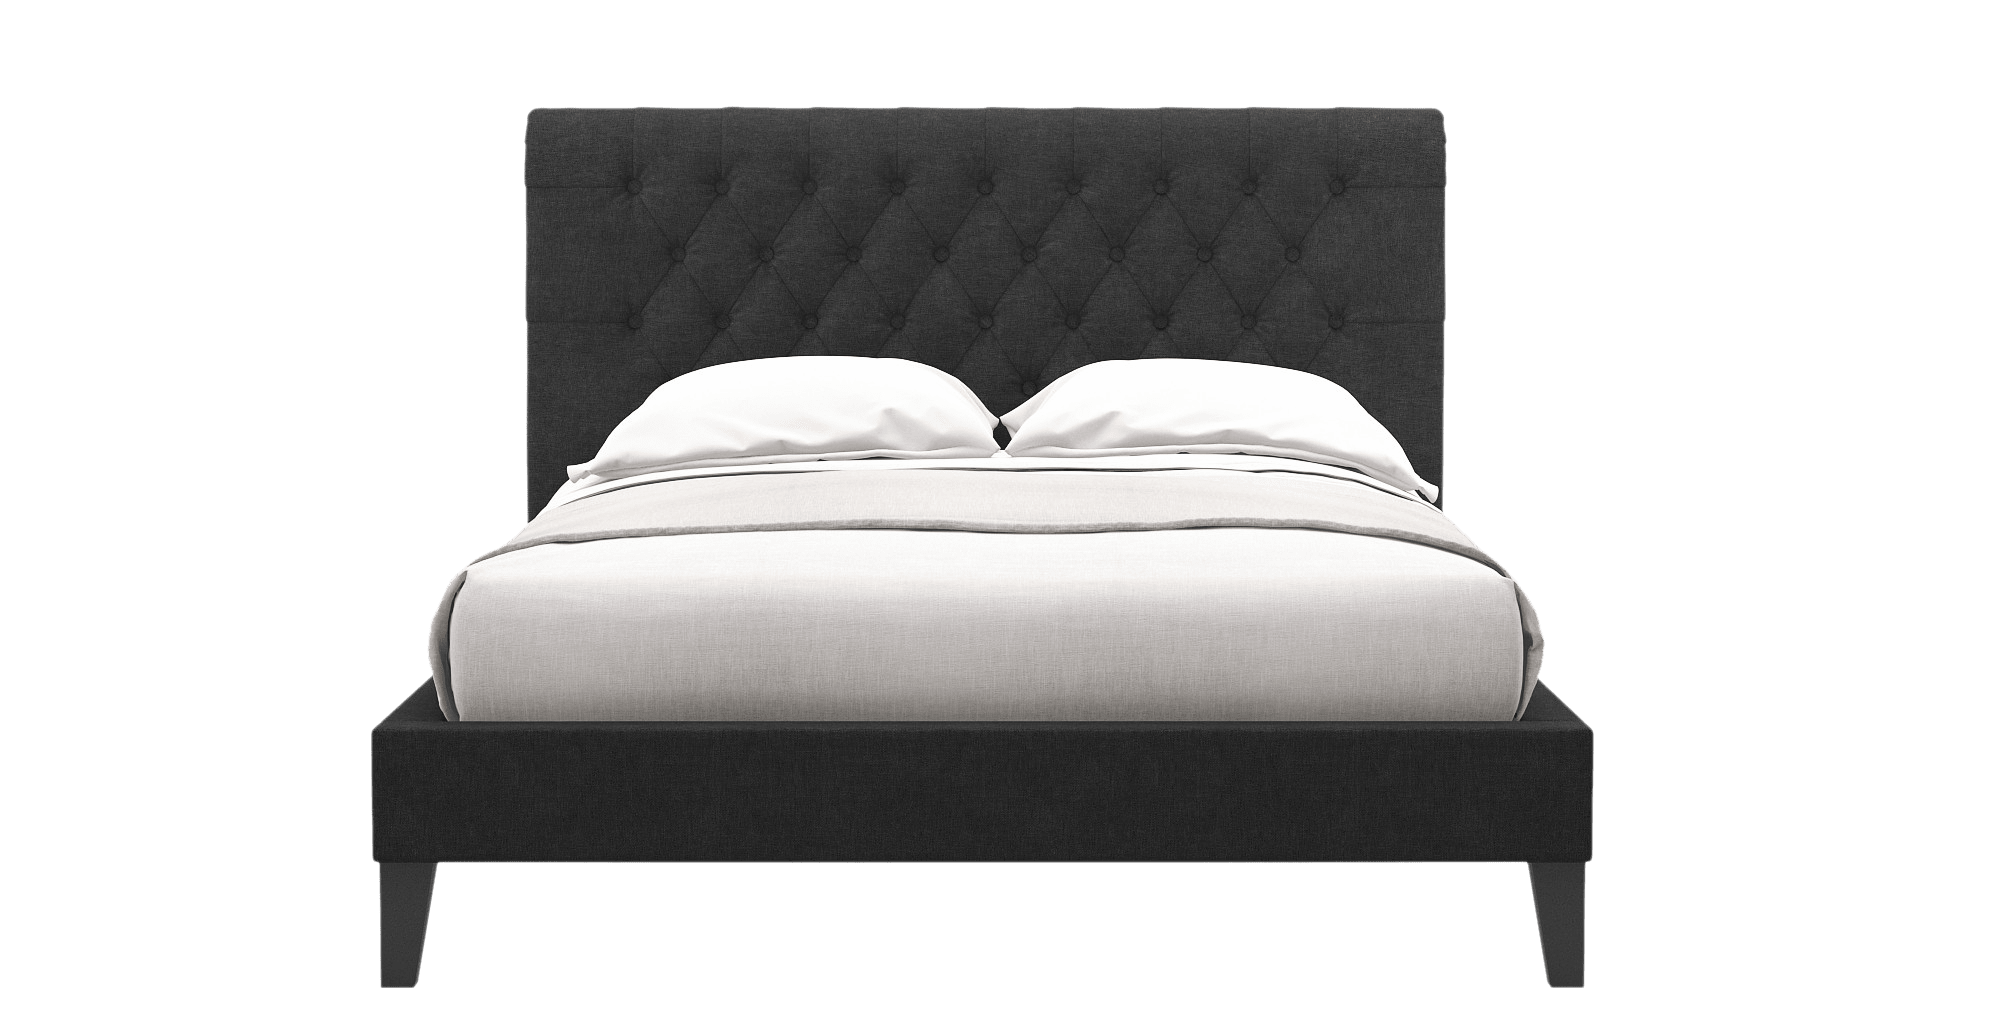 pillow overstock shipping free inch frames bed nuform mattress home size top quilted today queen foam plush garden product